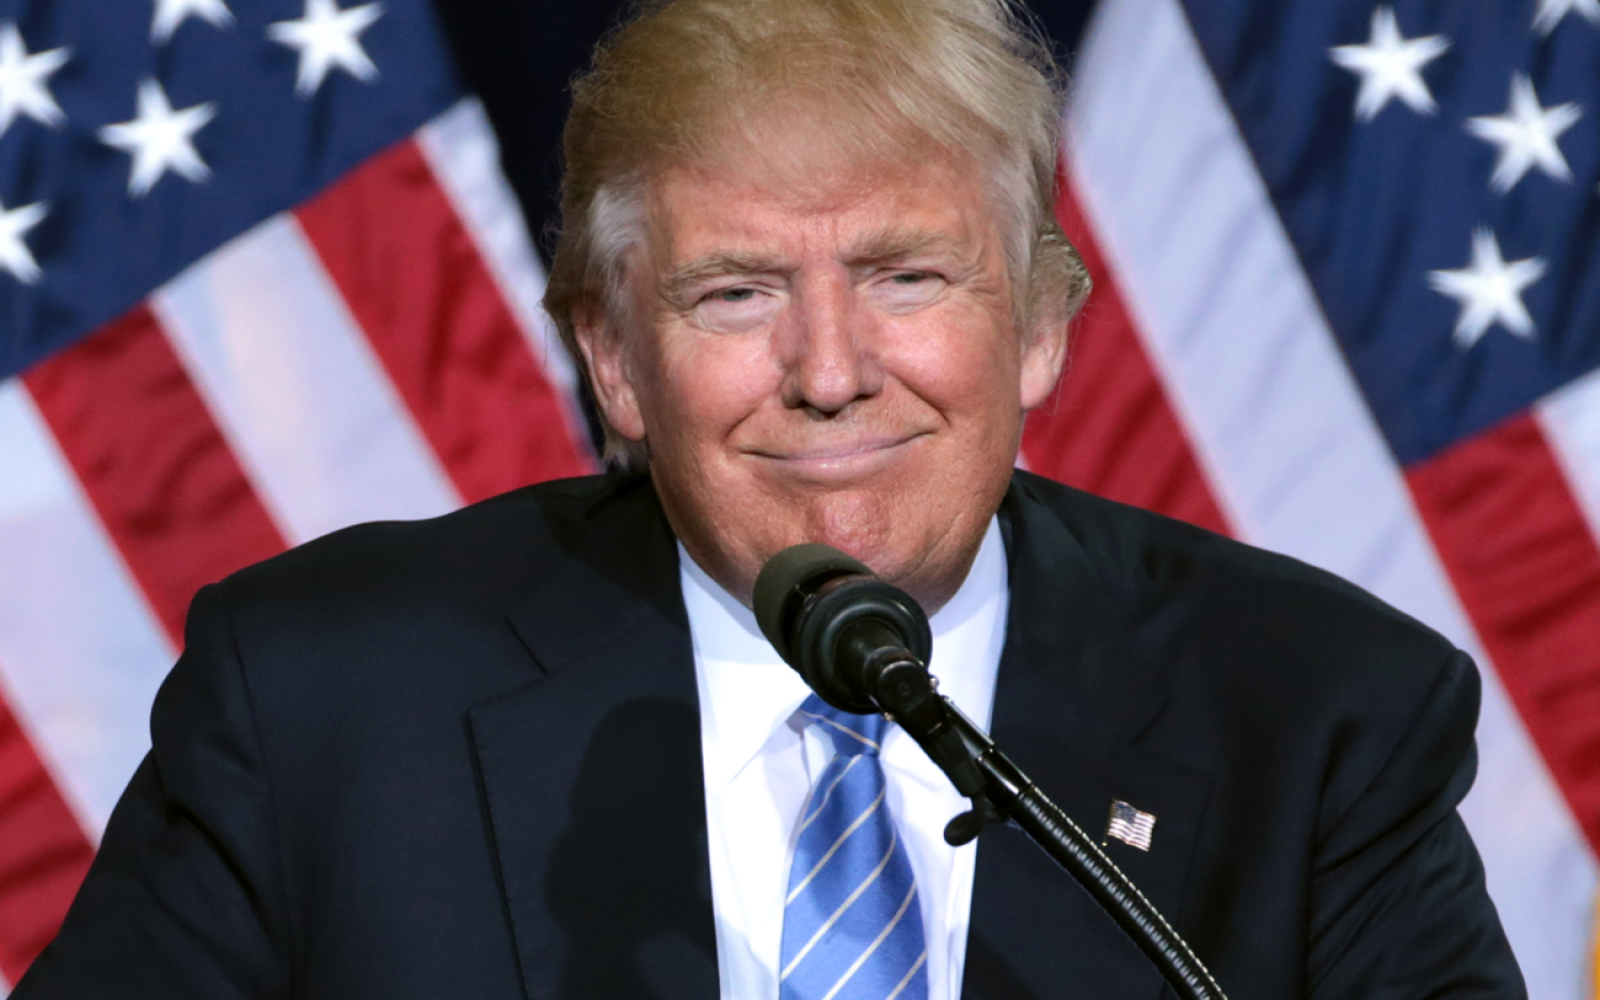 21 Hopeful And Inspiring Trump Tweets During His Race To The White House